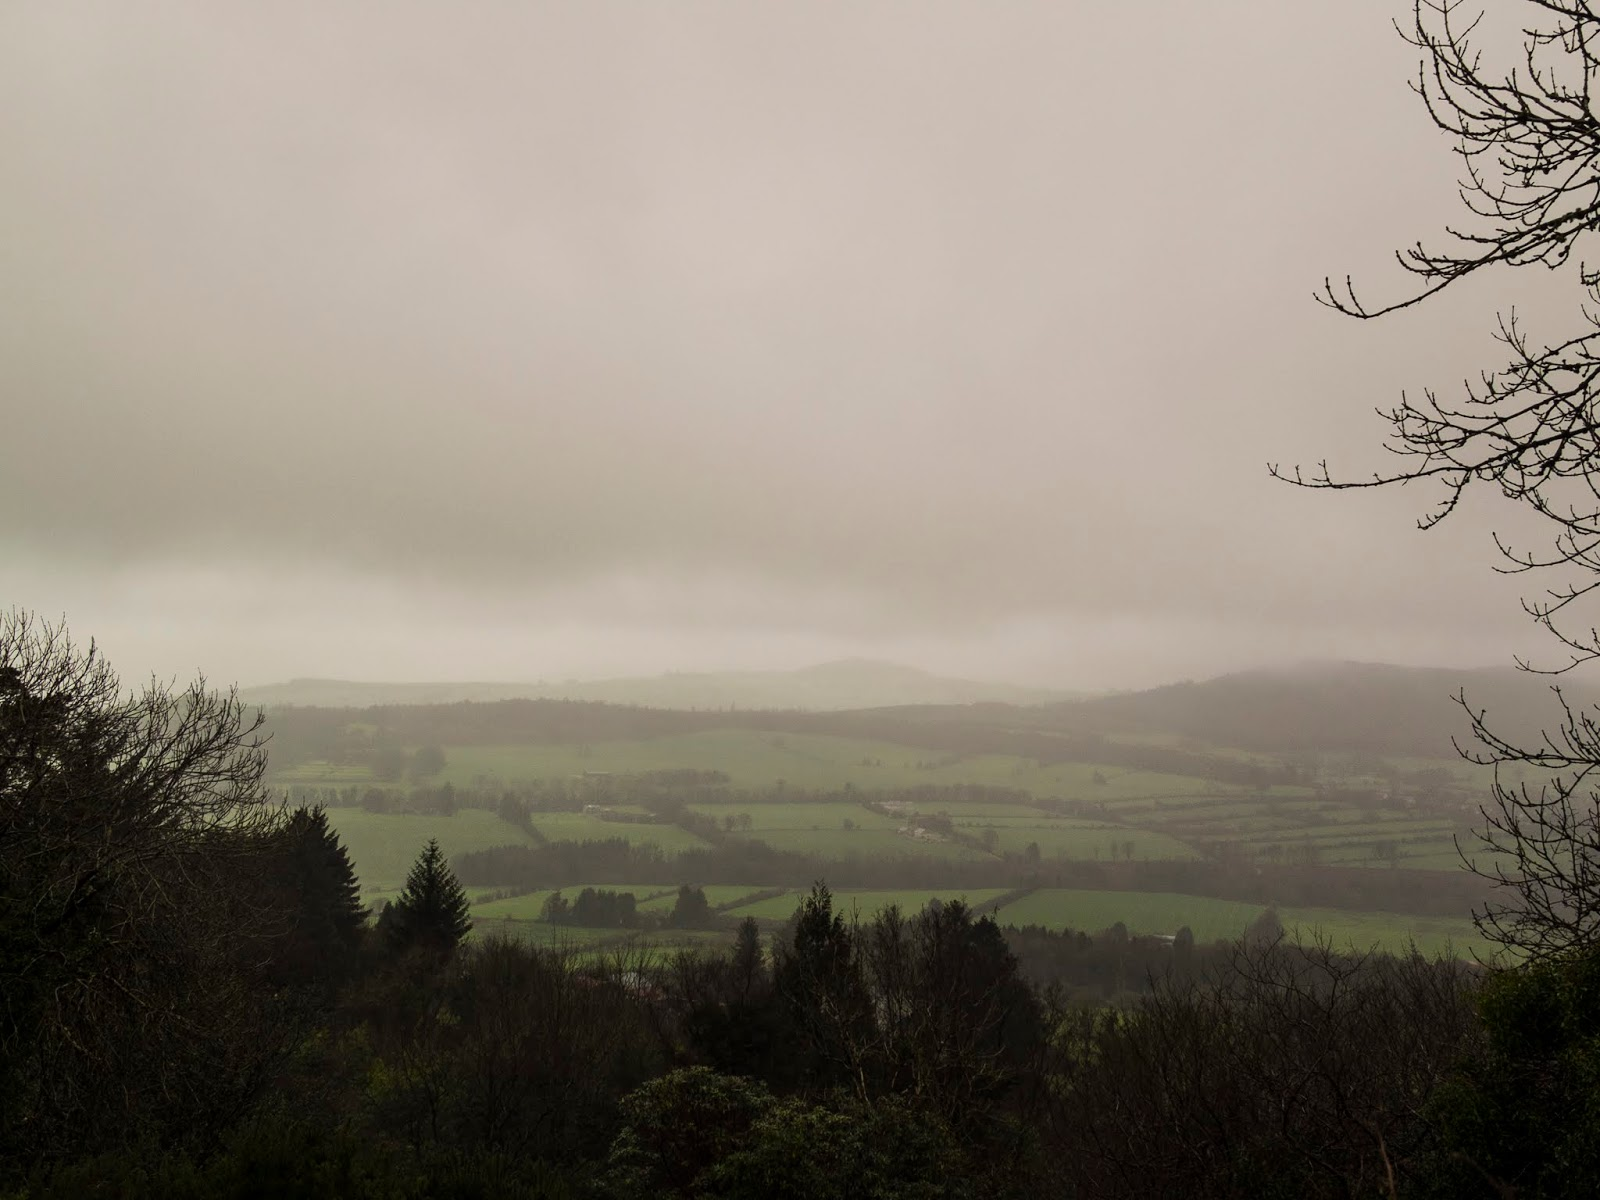 Foggy mountains in North County Cork.